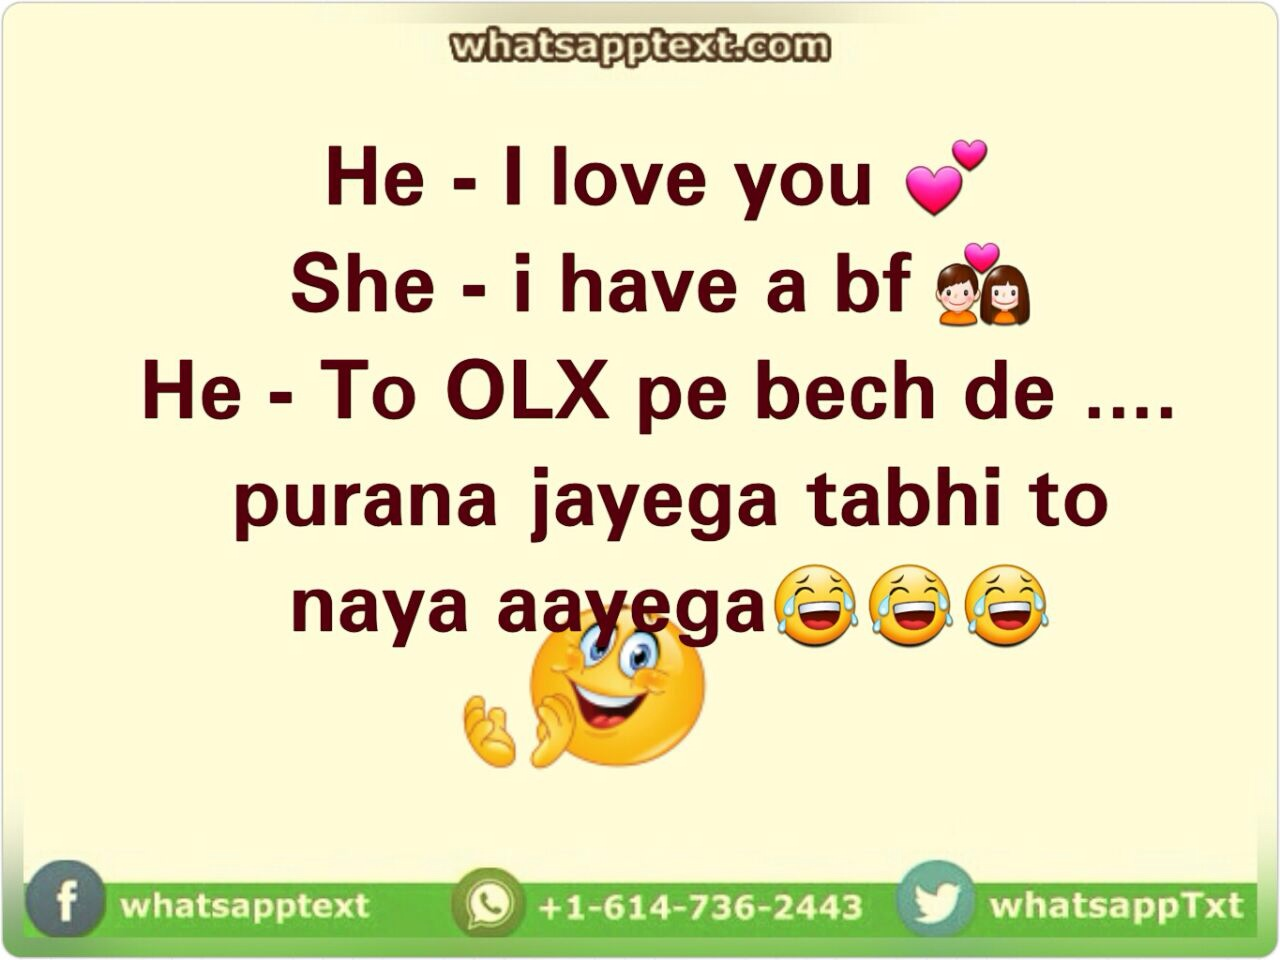 Boy Funny Hindi Whatsapp Jokes With Pictures Whatsapp Text Jokescoff Hindijokes4u Funny Hindi Whatsapp Jokes With Pictures Whatsapp